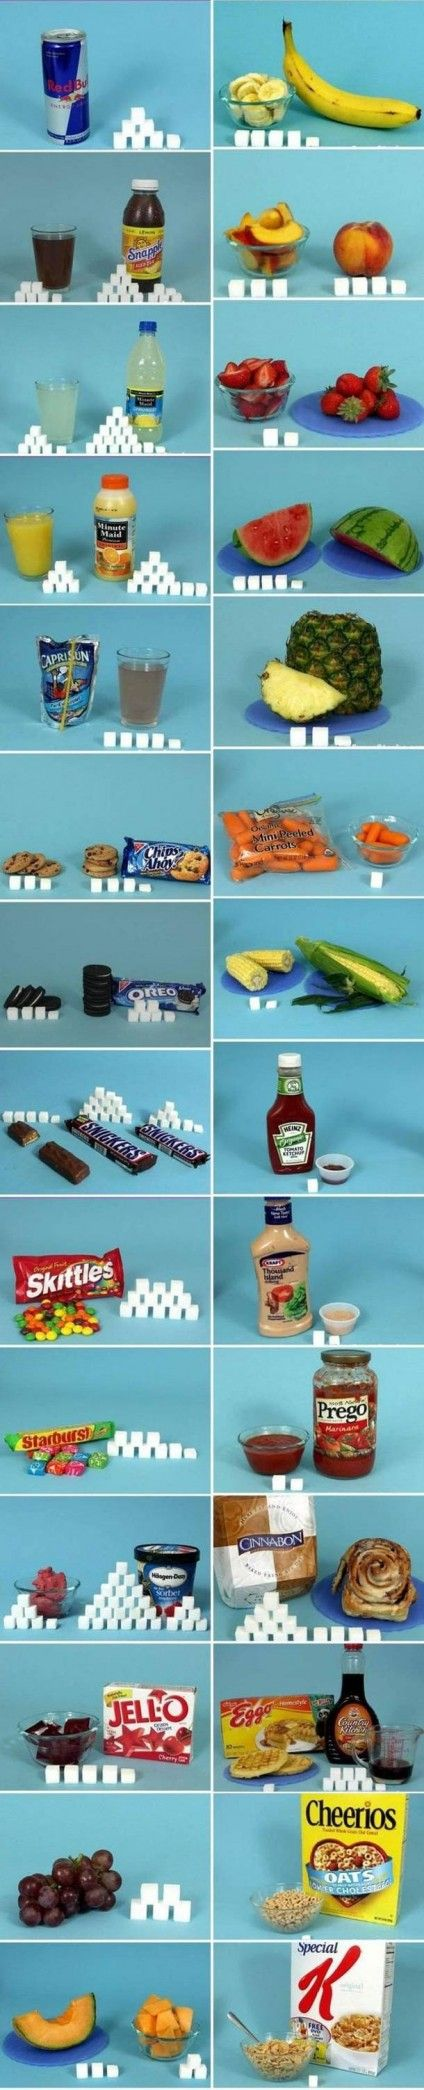 The Amount Of Sugar In Food, Expressed In Sugar Cubes #Infographic